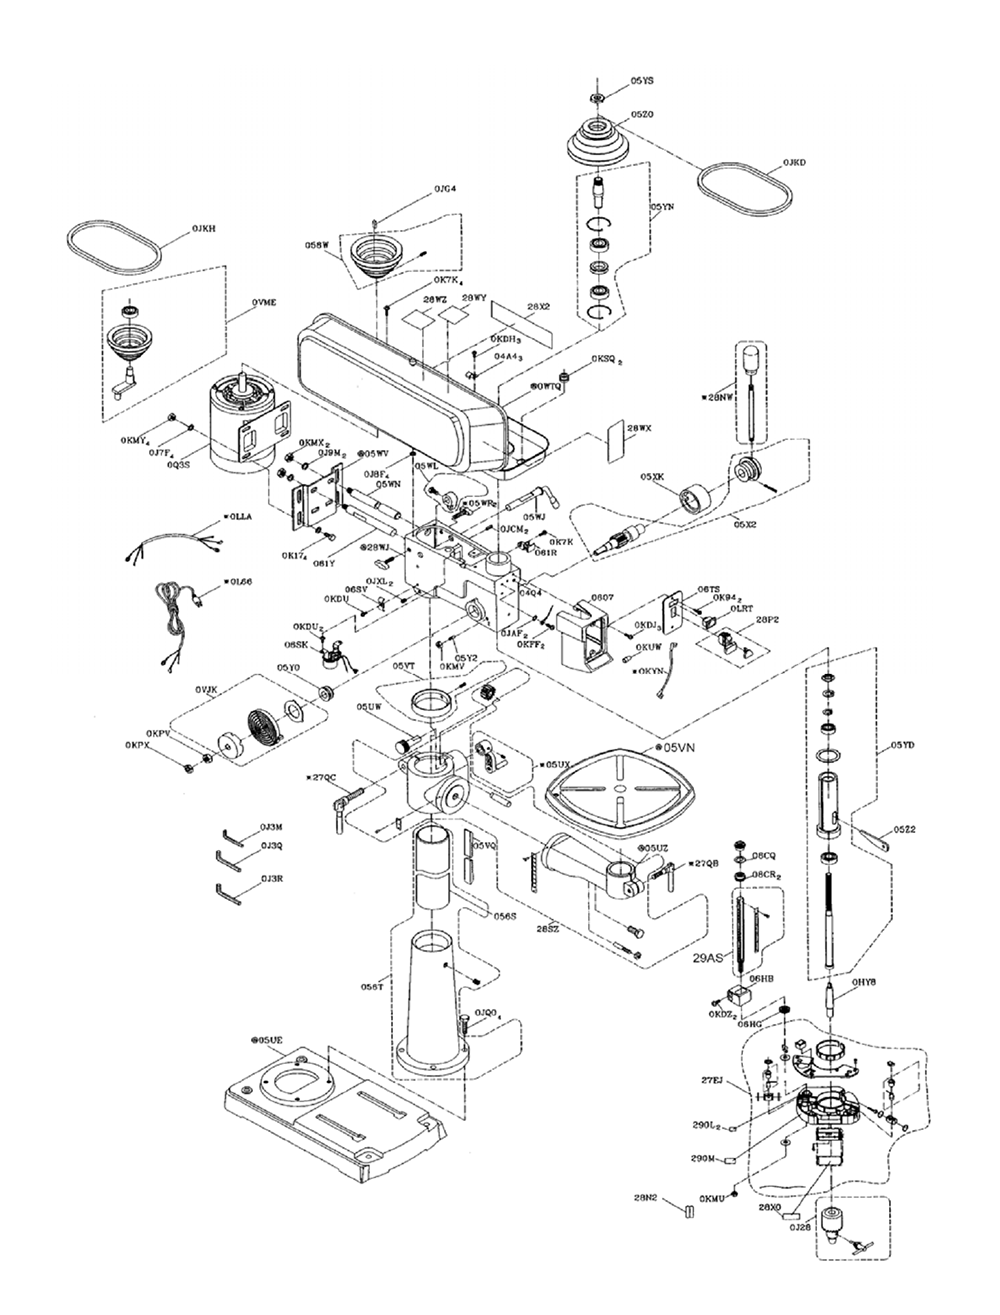 Drill Press Parts Diagram Pictures to Pin on Pinterest